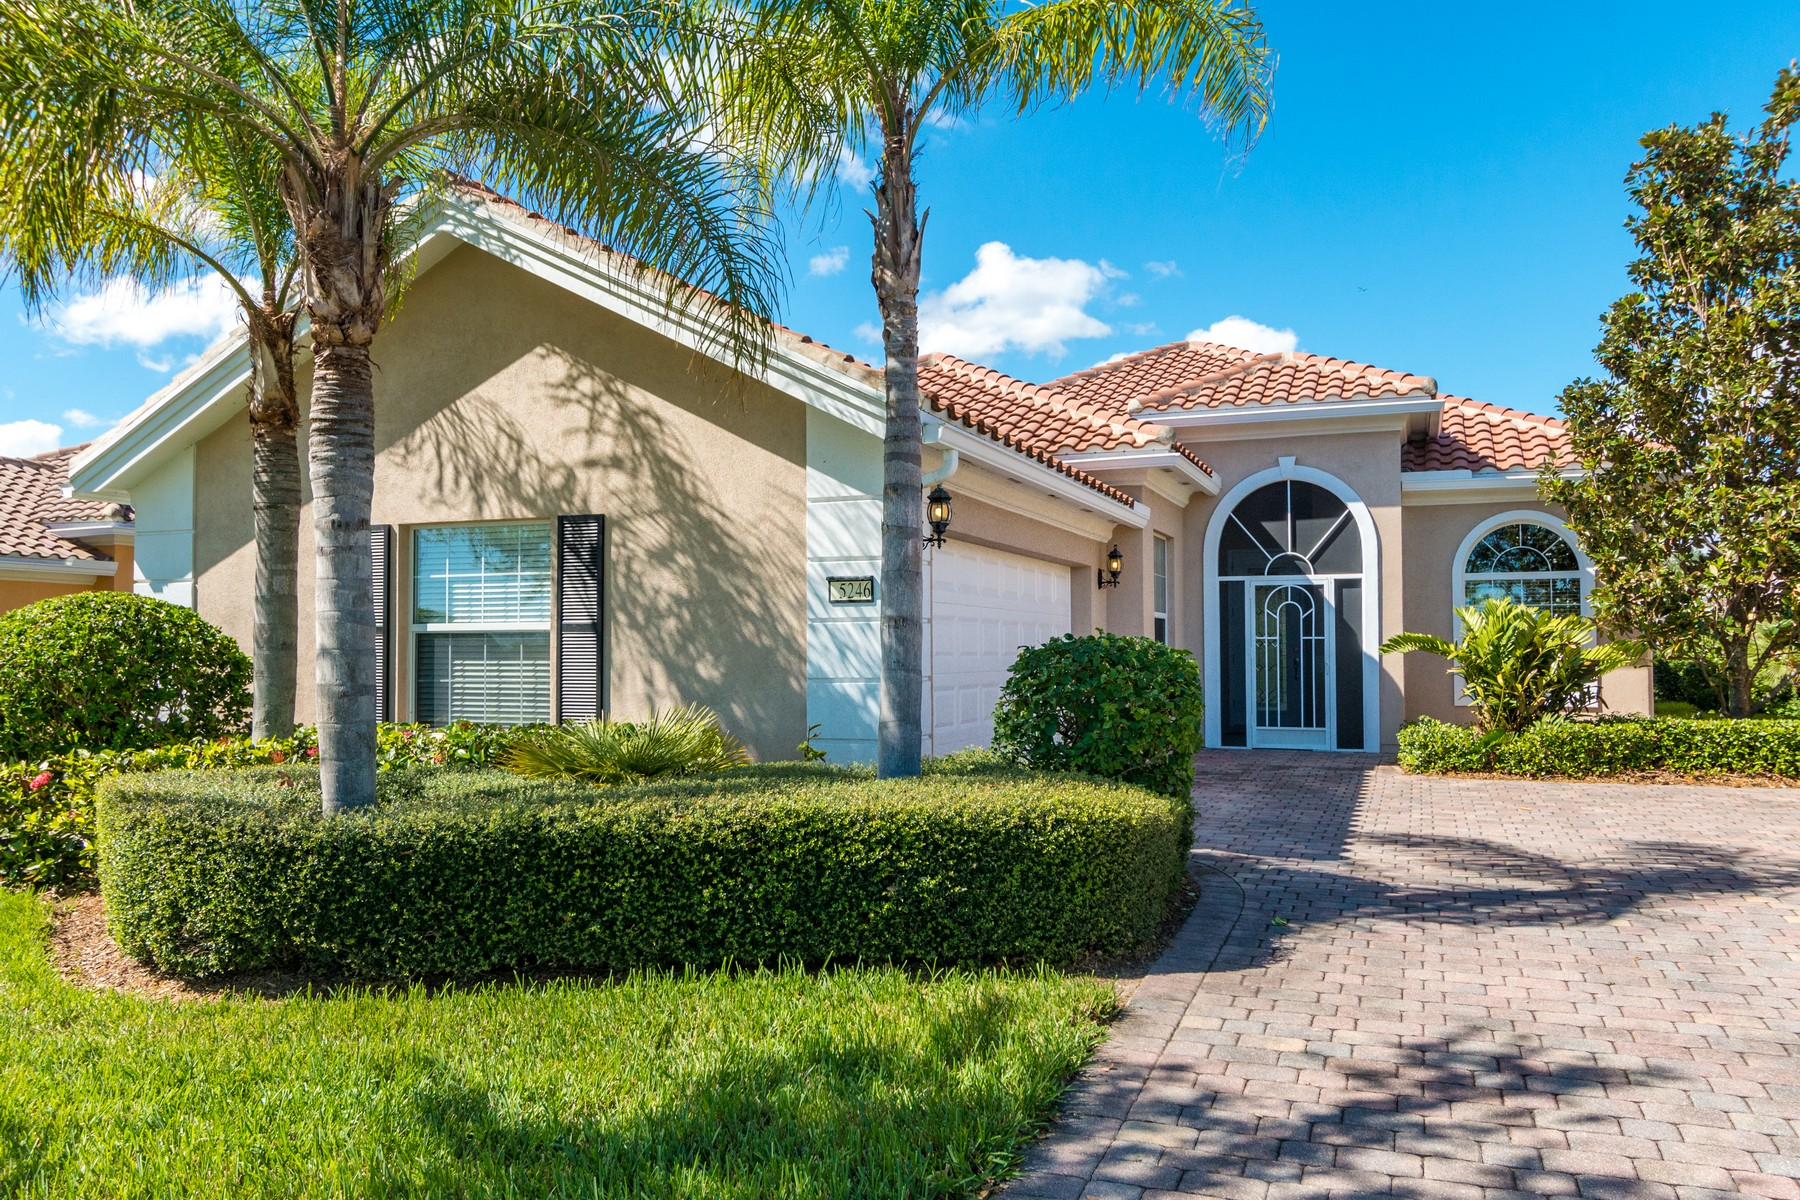 Beautiful Lakefront Home 5246 Eleuthra Circle Vero Beach, Florida 32967 United States